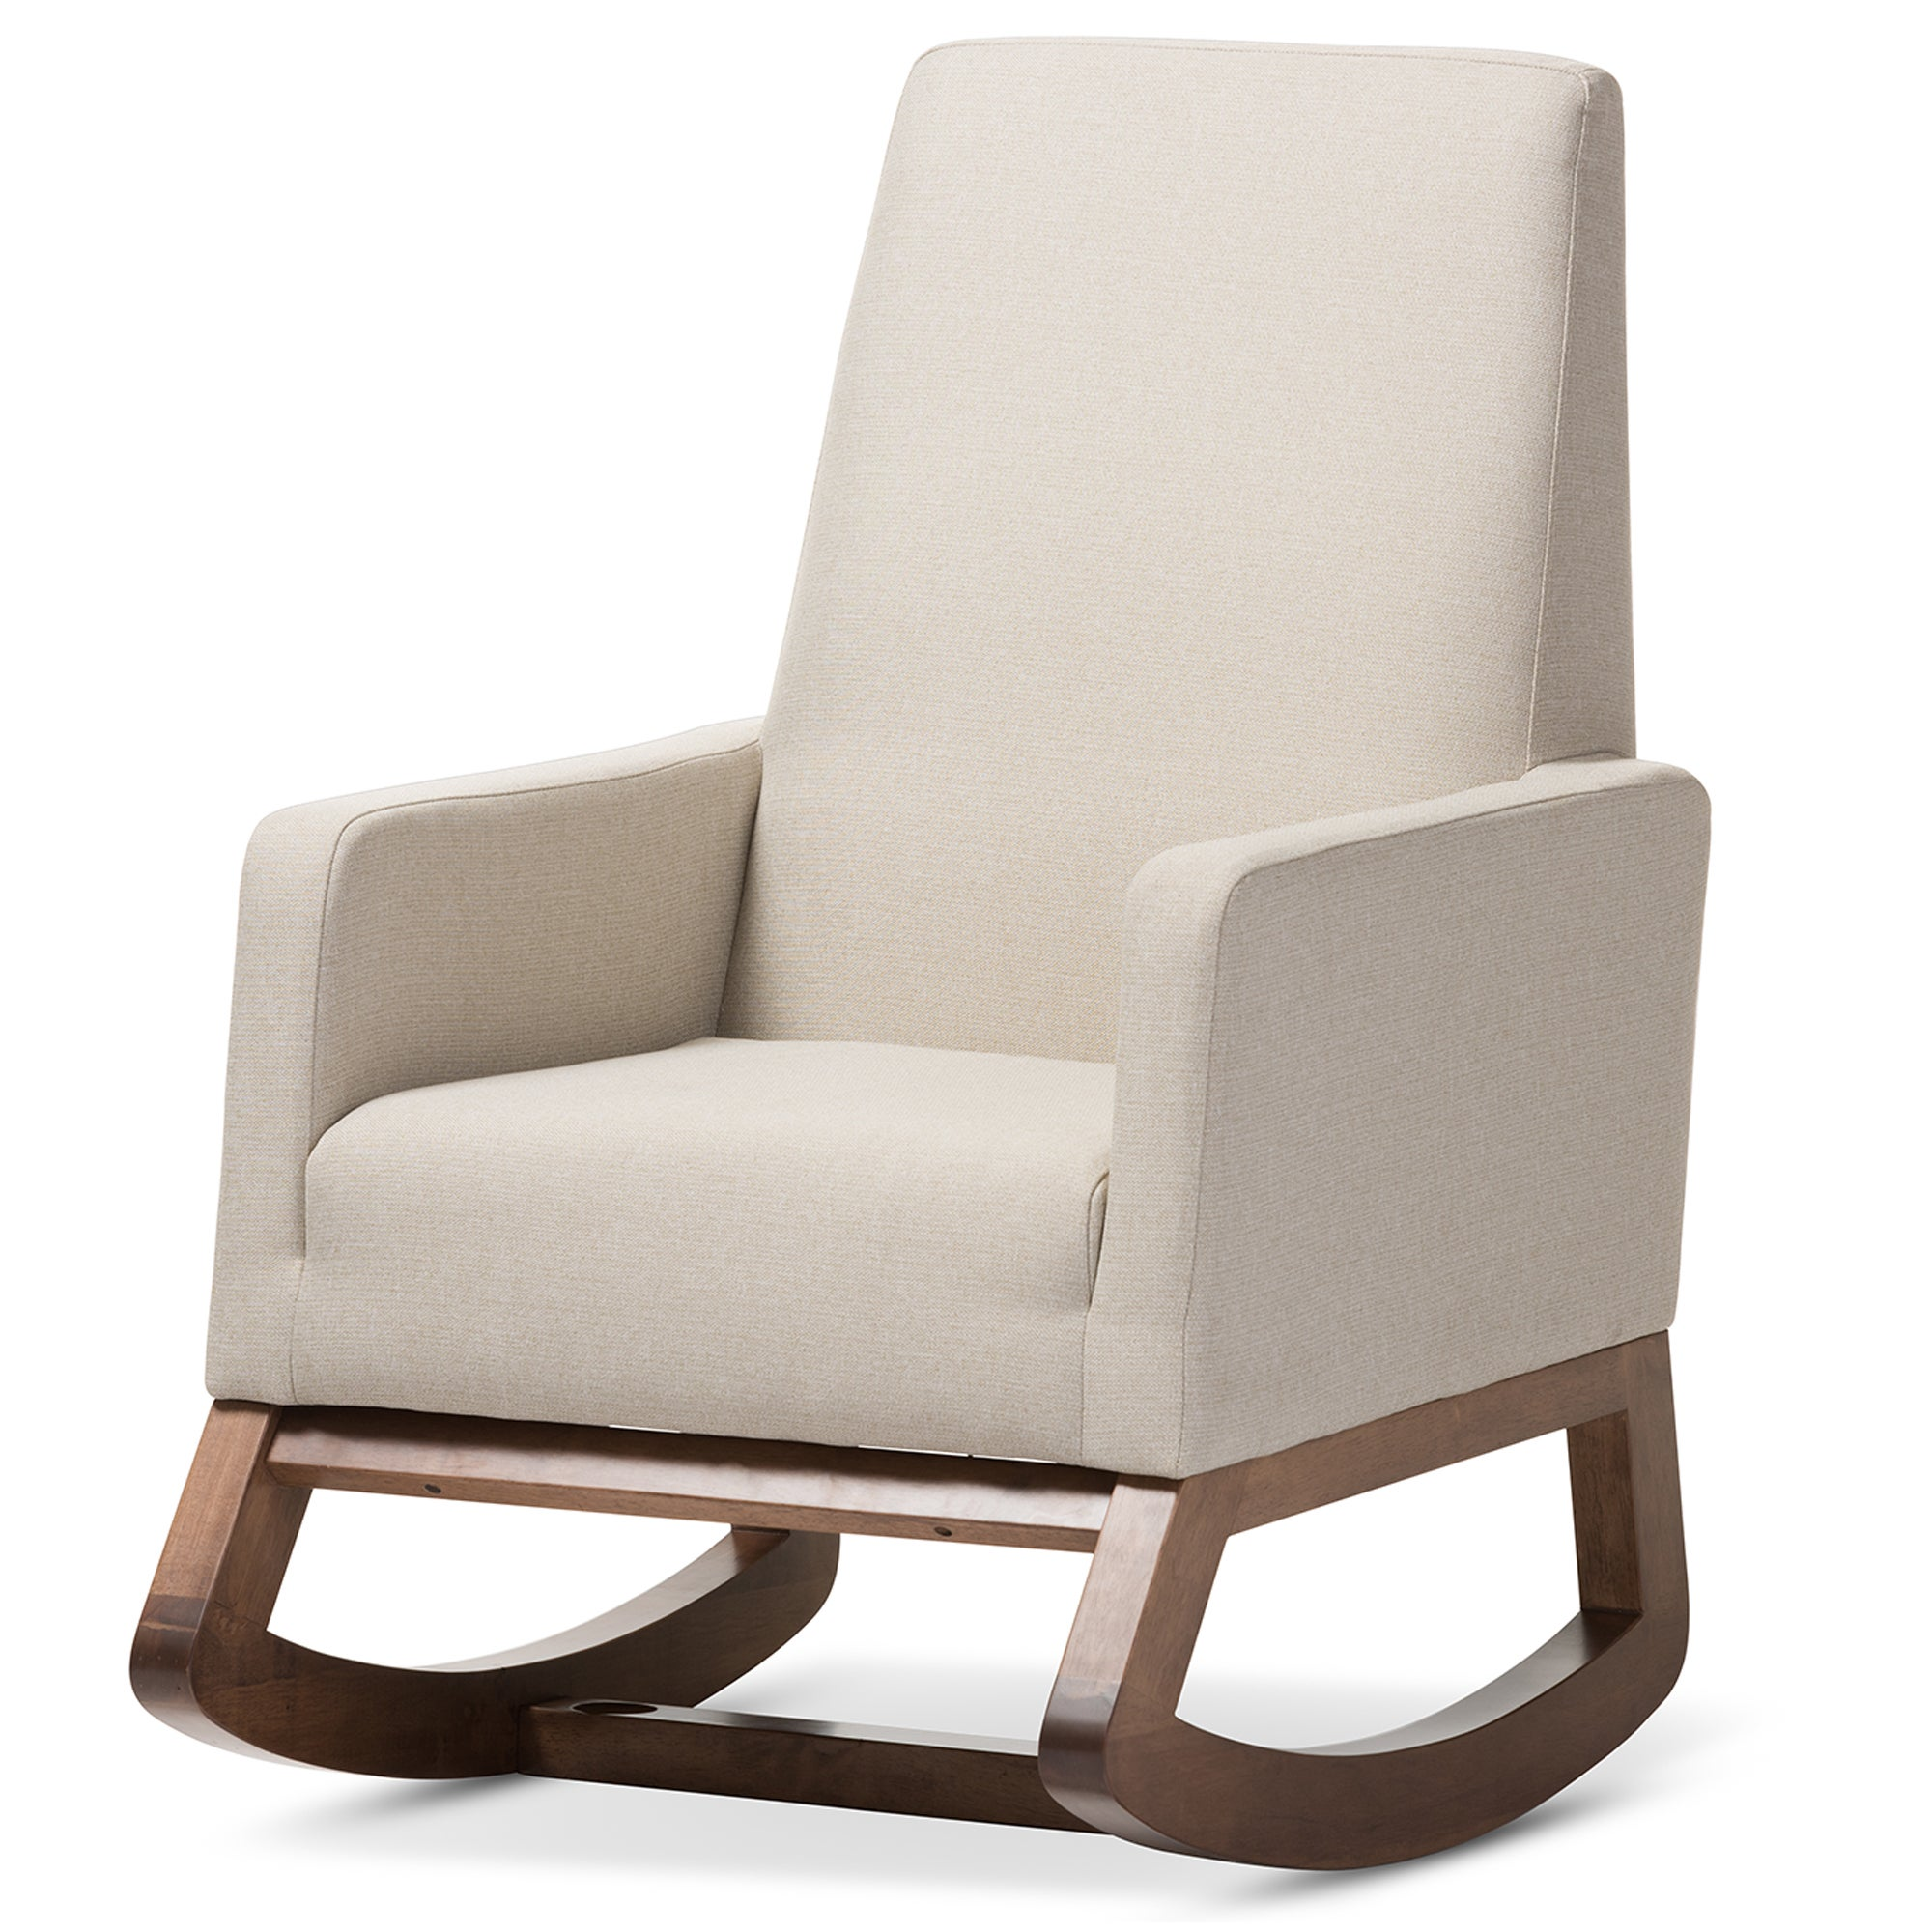 Ordinaire Shop Strick U0026 Bolton Coleman Mid Century Modern Light Beige Upholstered  Rocking Chair And Ottoman Set   Free Shipping Today   Overstock.com    20543658